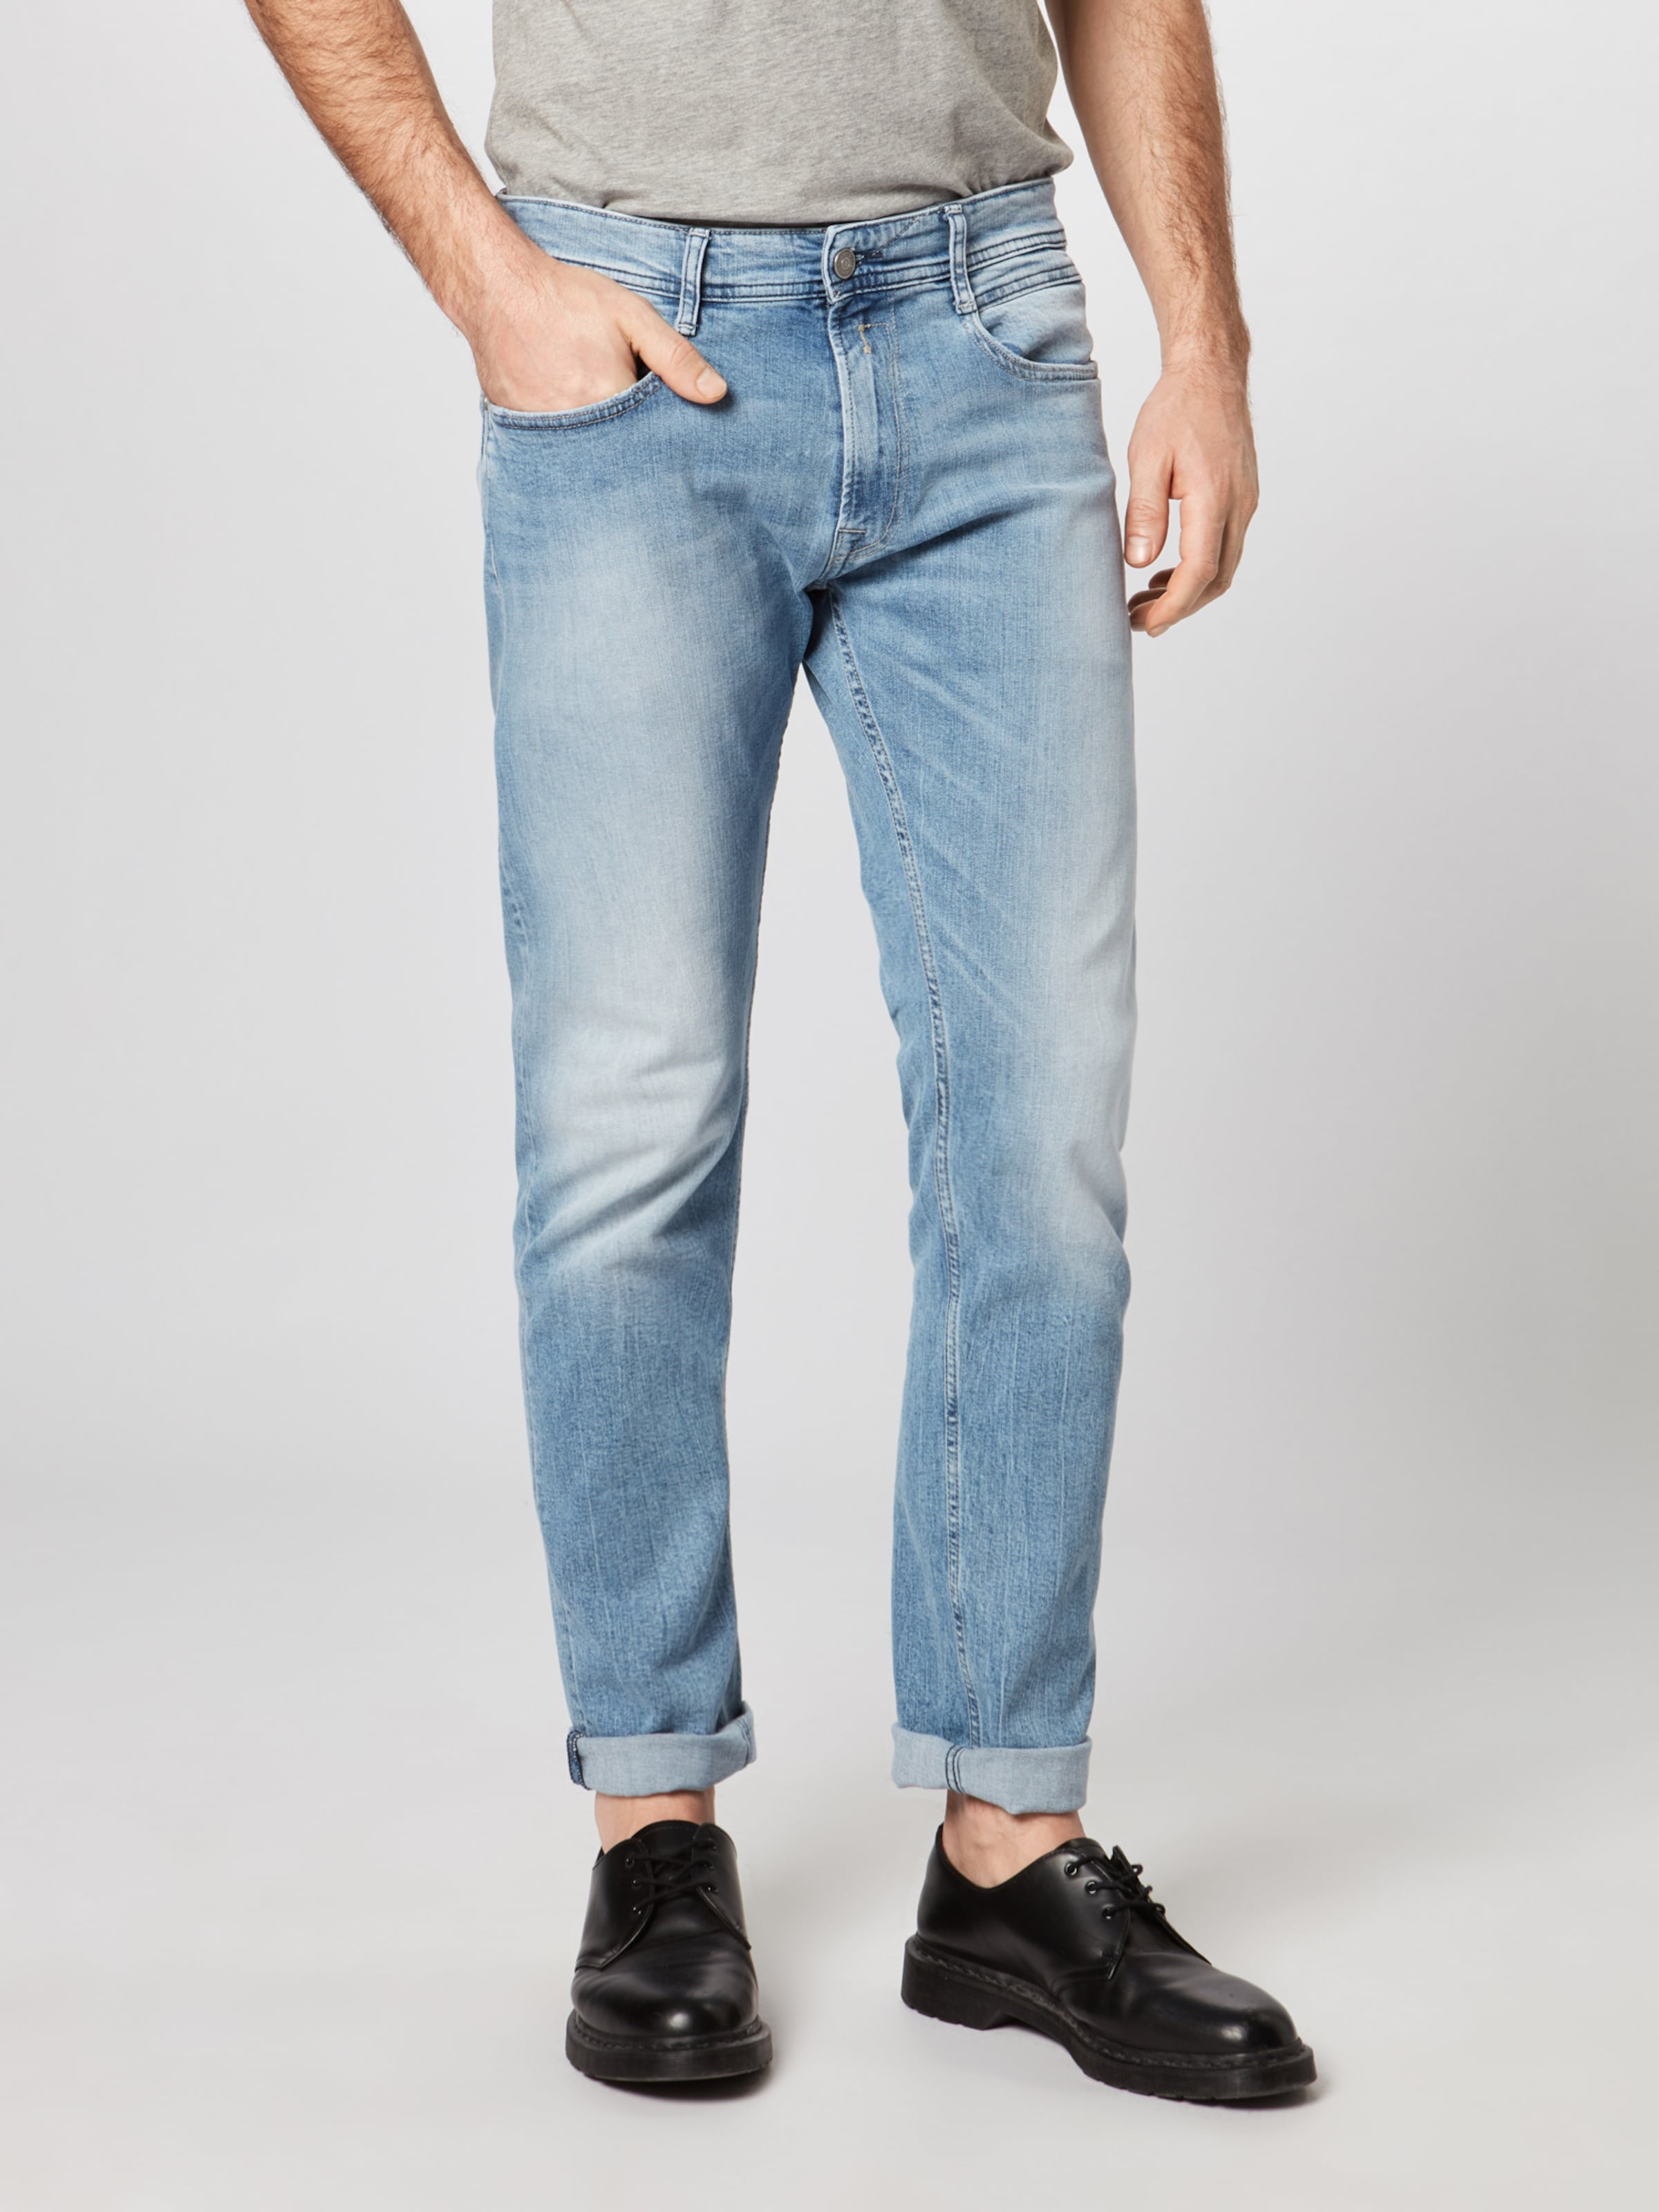 In Replay 'rob' Jeans Blue Denim yw0NOmnv8P